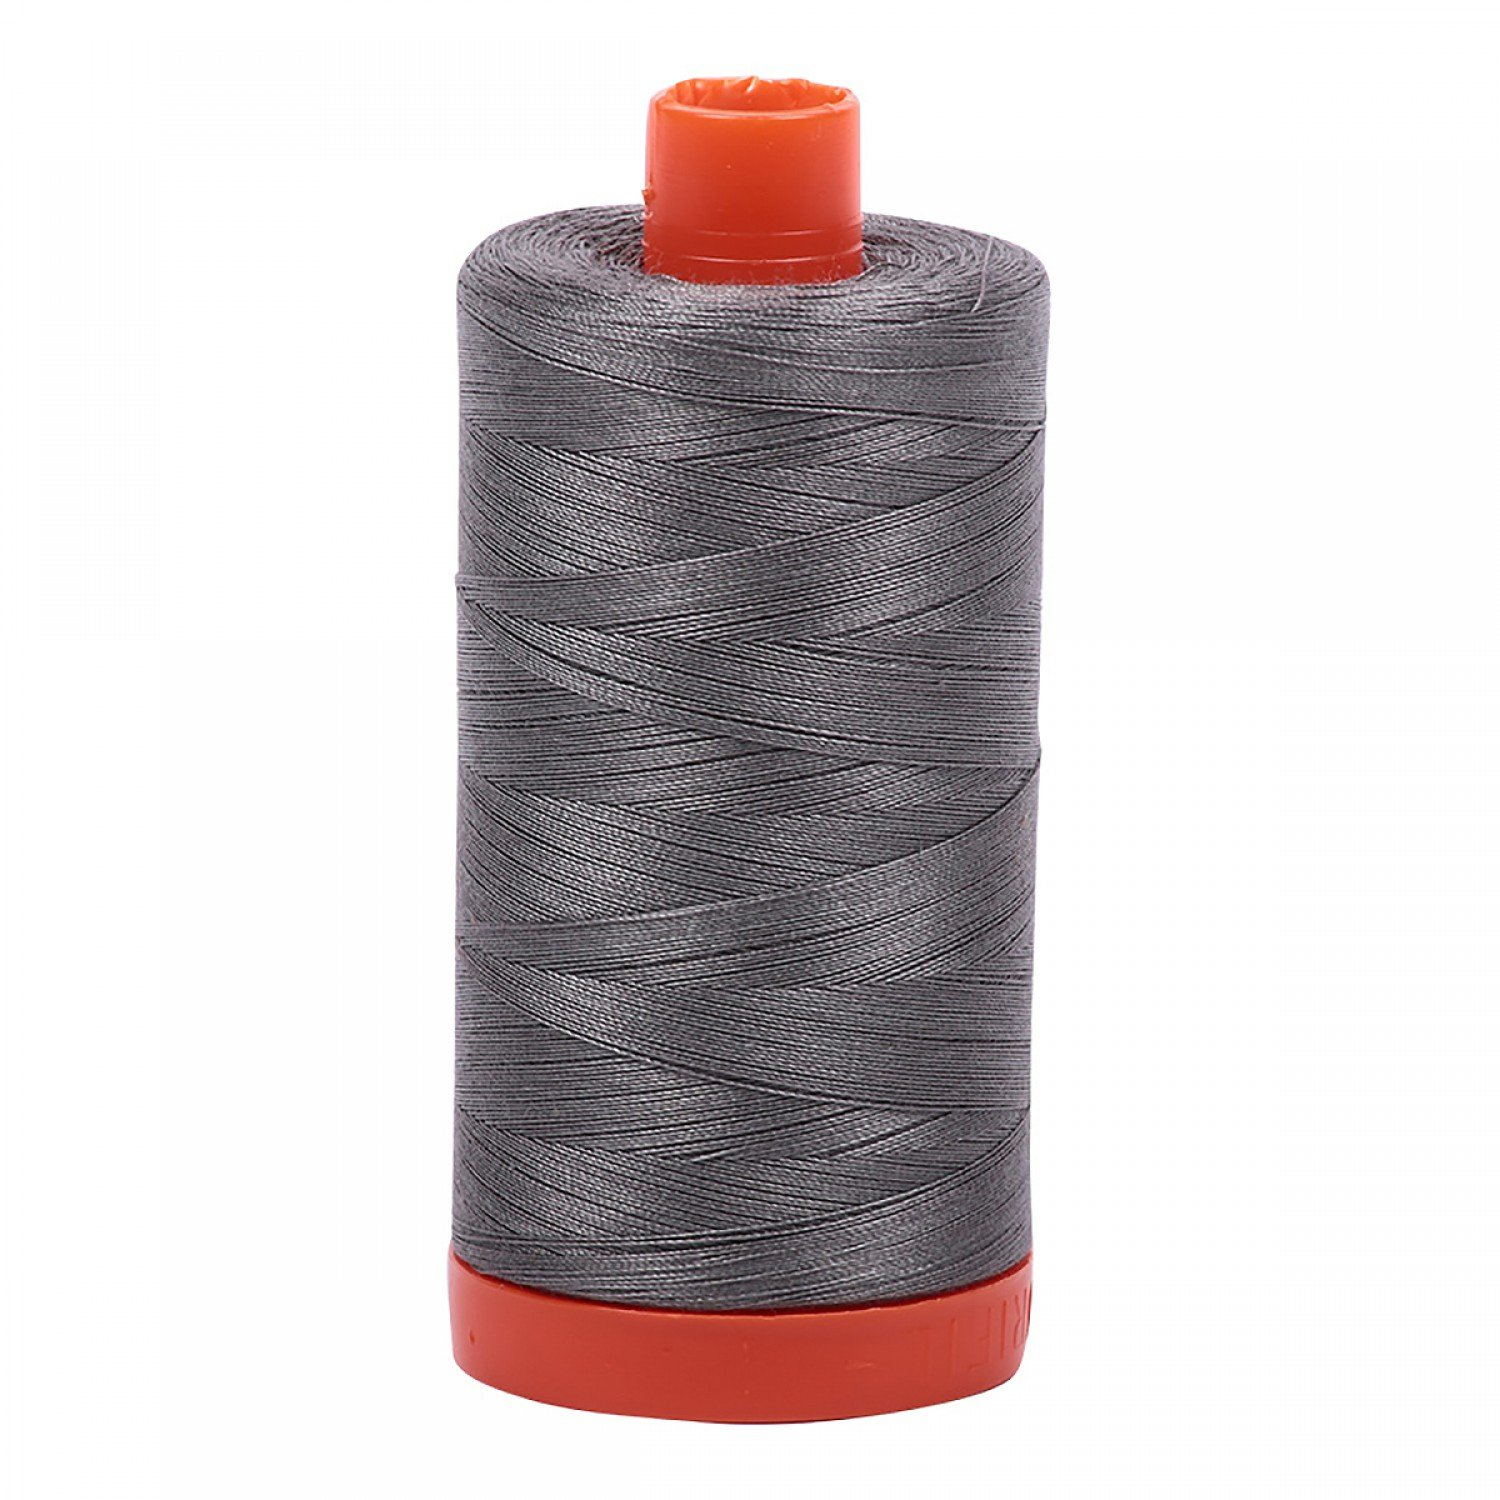 Aurifil Mako Cotton Thread Solid 50wt 1422yds 5004 Grey Smoke